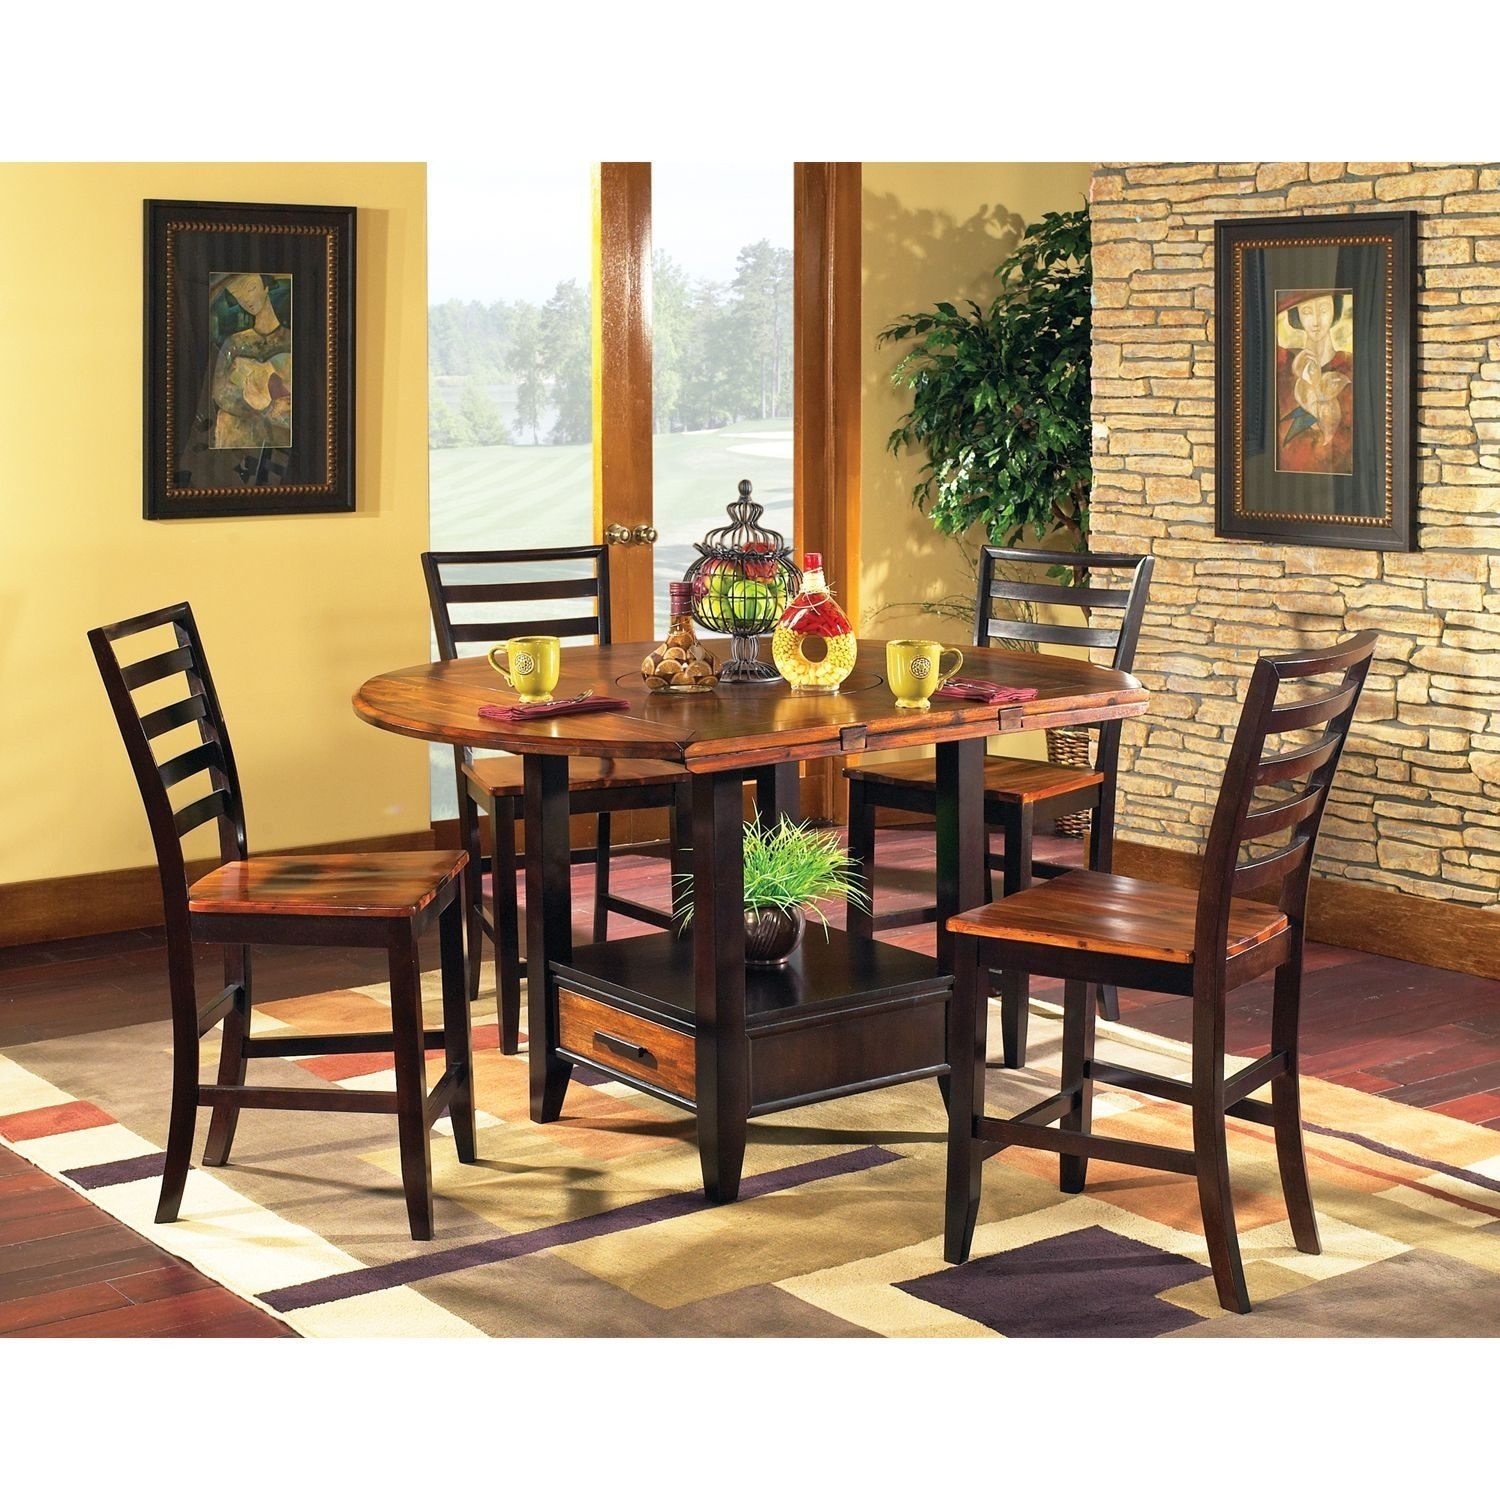 Pierson Counter Height Dining Setlauren Wells – 5 Pc | For The Inside Most Recent Laurent 5 Piece Round Dining Sets With Wood Chairs (Image 13 of 20)